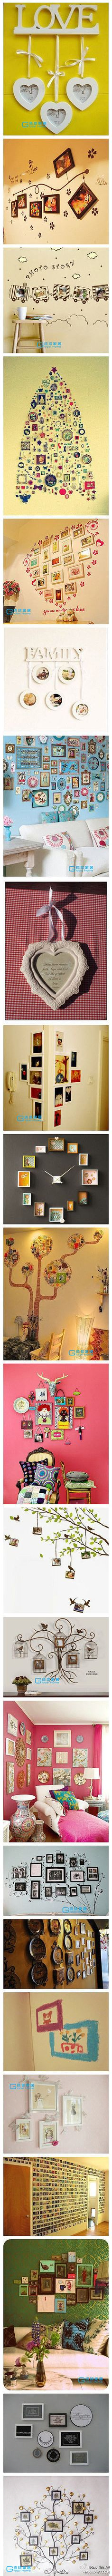 Home Sweet Hom Picture Display Photos Ideas Photo Deco, Deco Design, Do It Yourself Home, Home And Deco, Creative Photos, Photo Displays, Display Photos, Diy Wall Art, Picture Wall